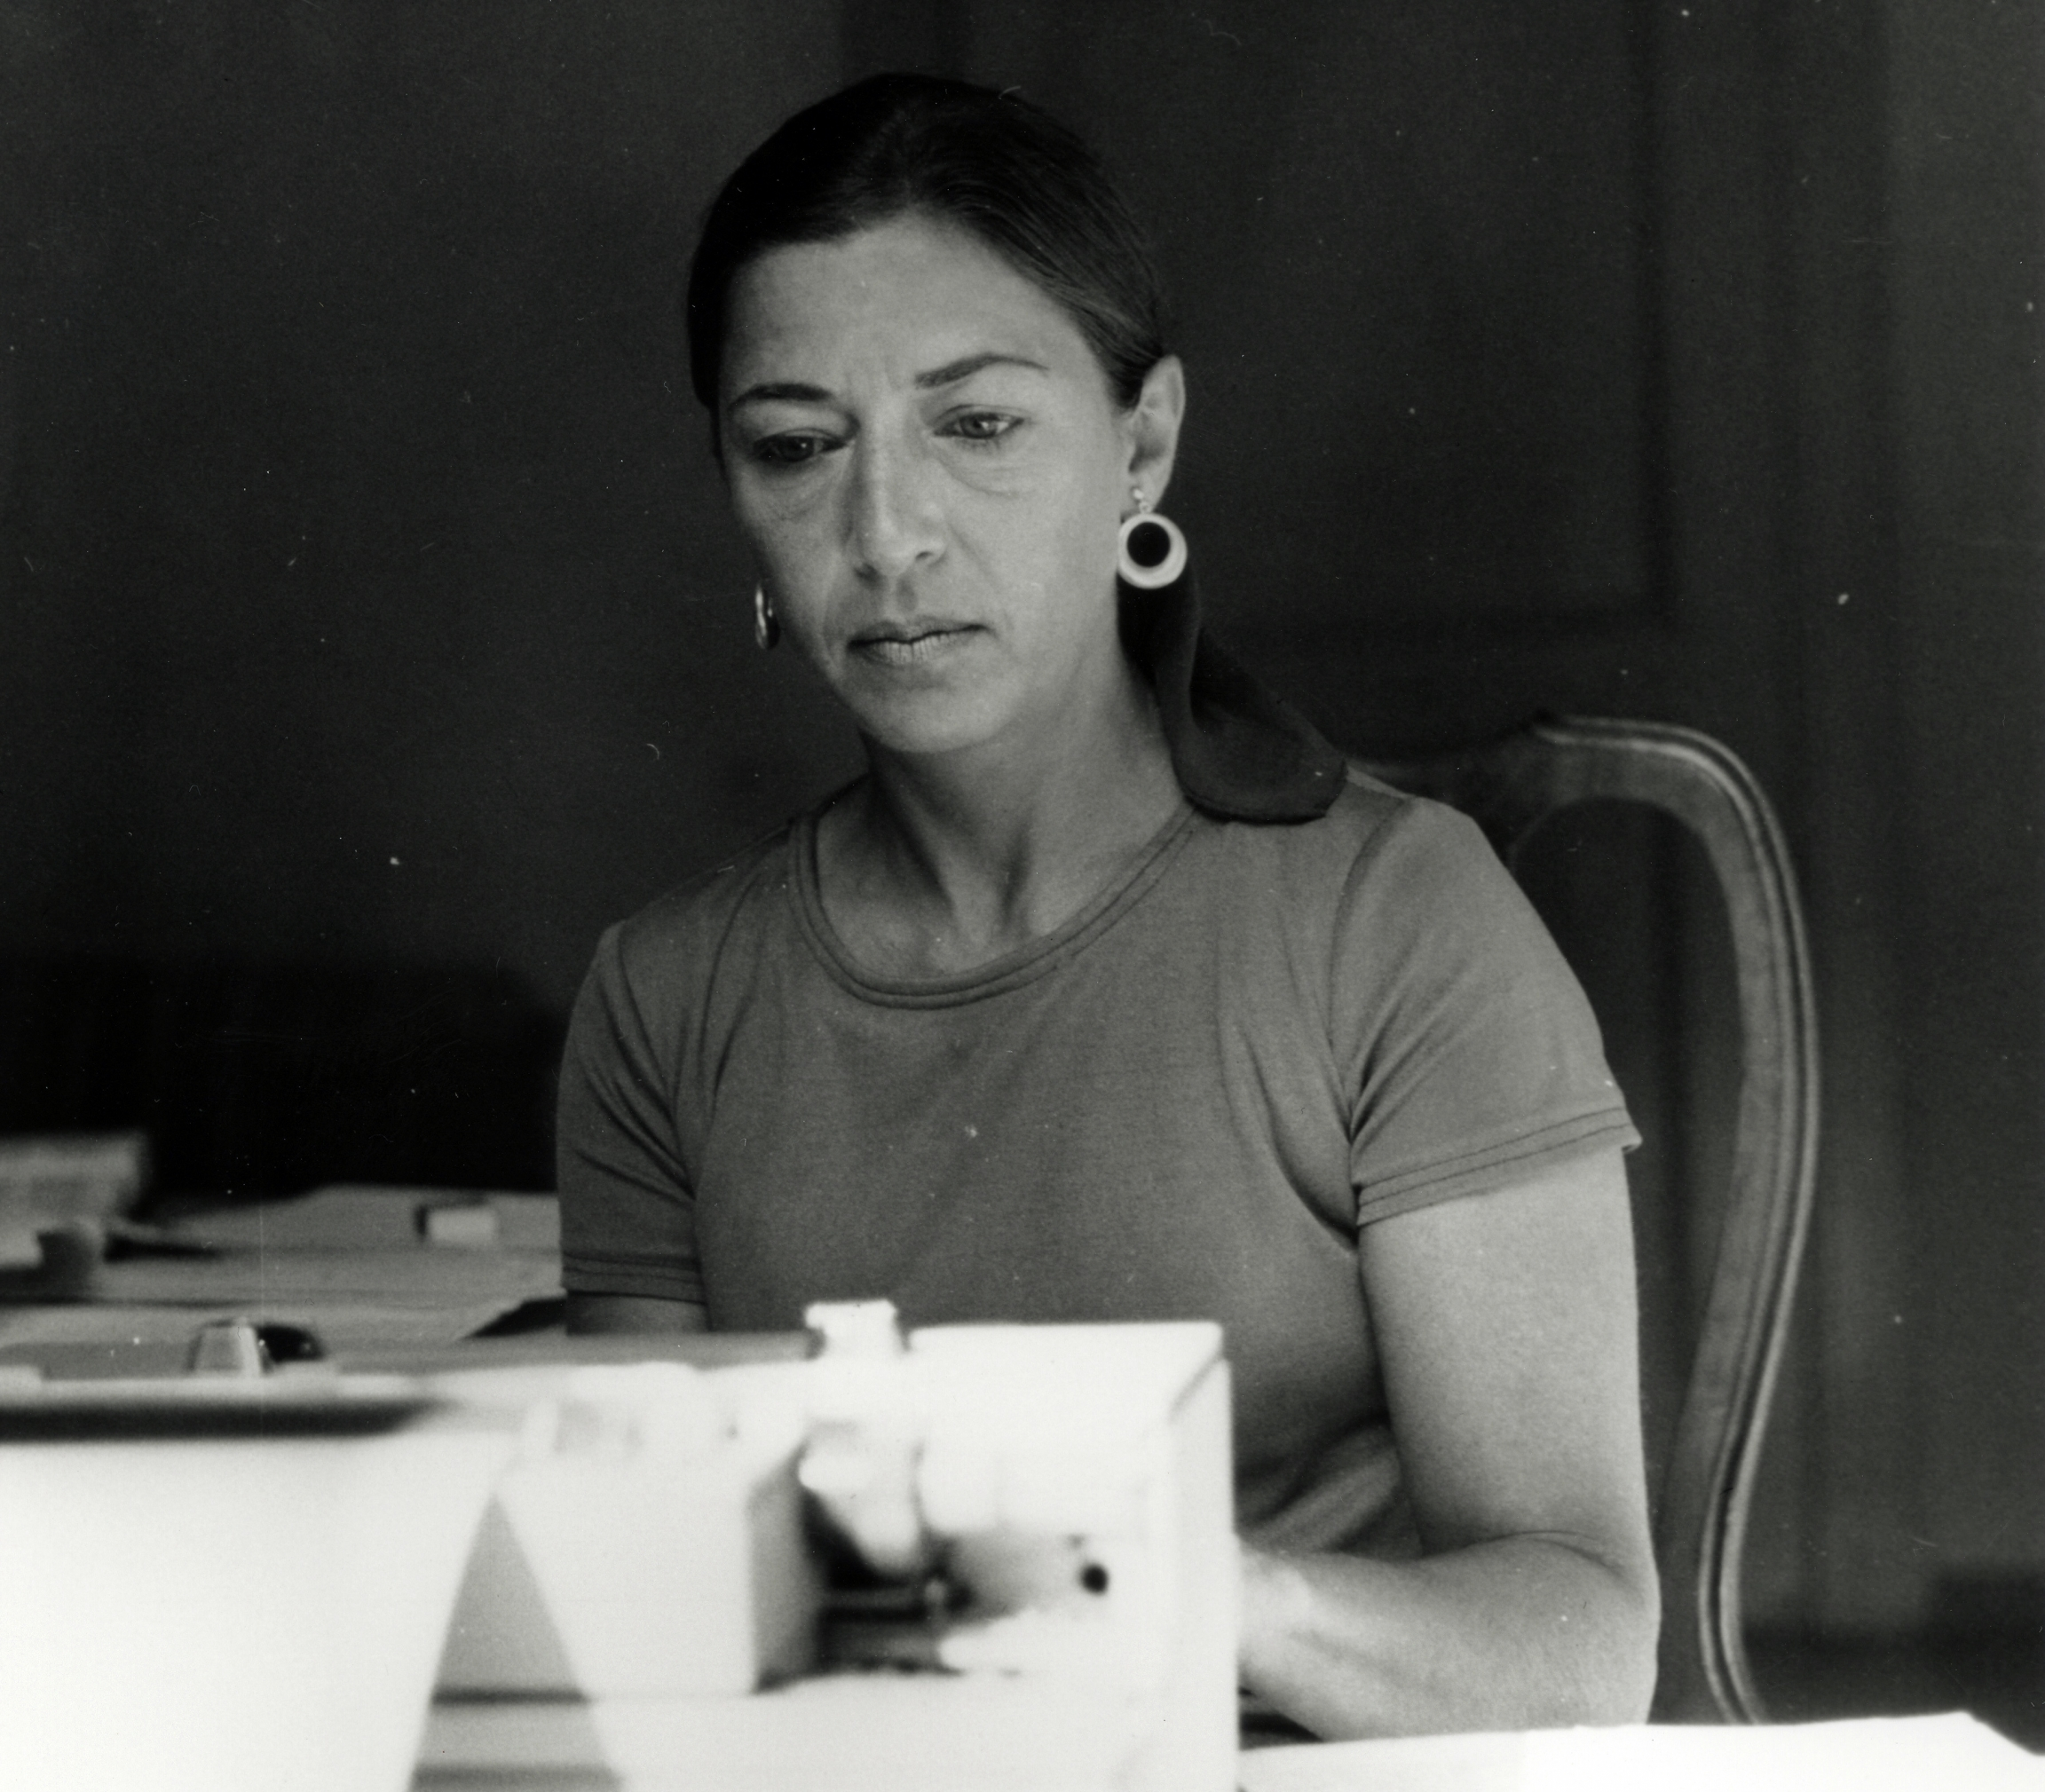 Black and white photo of young Ruth Bader Ginsburg wearing a casual shirt with her hair pulled back